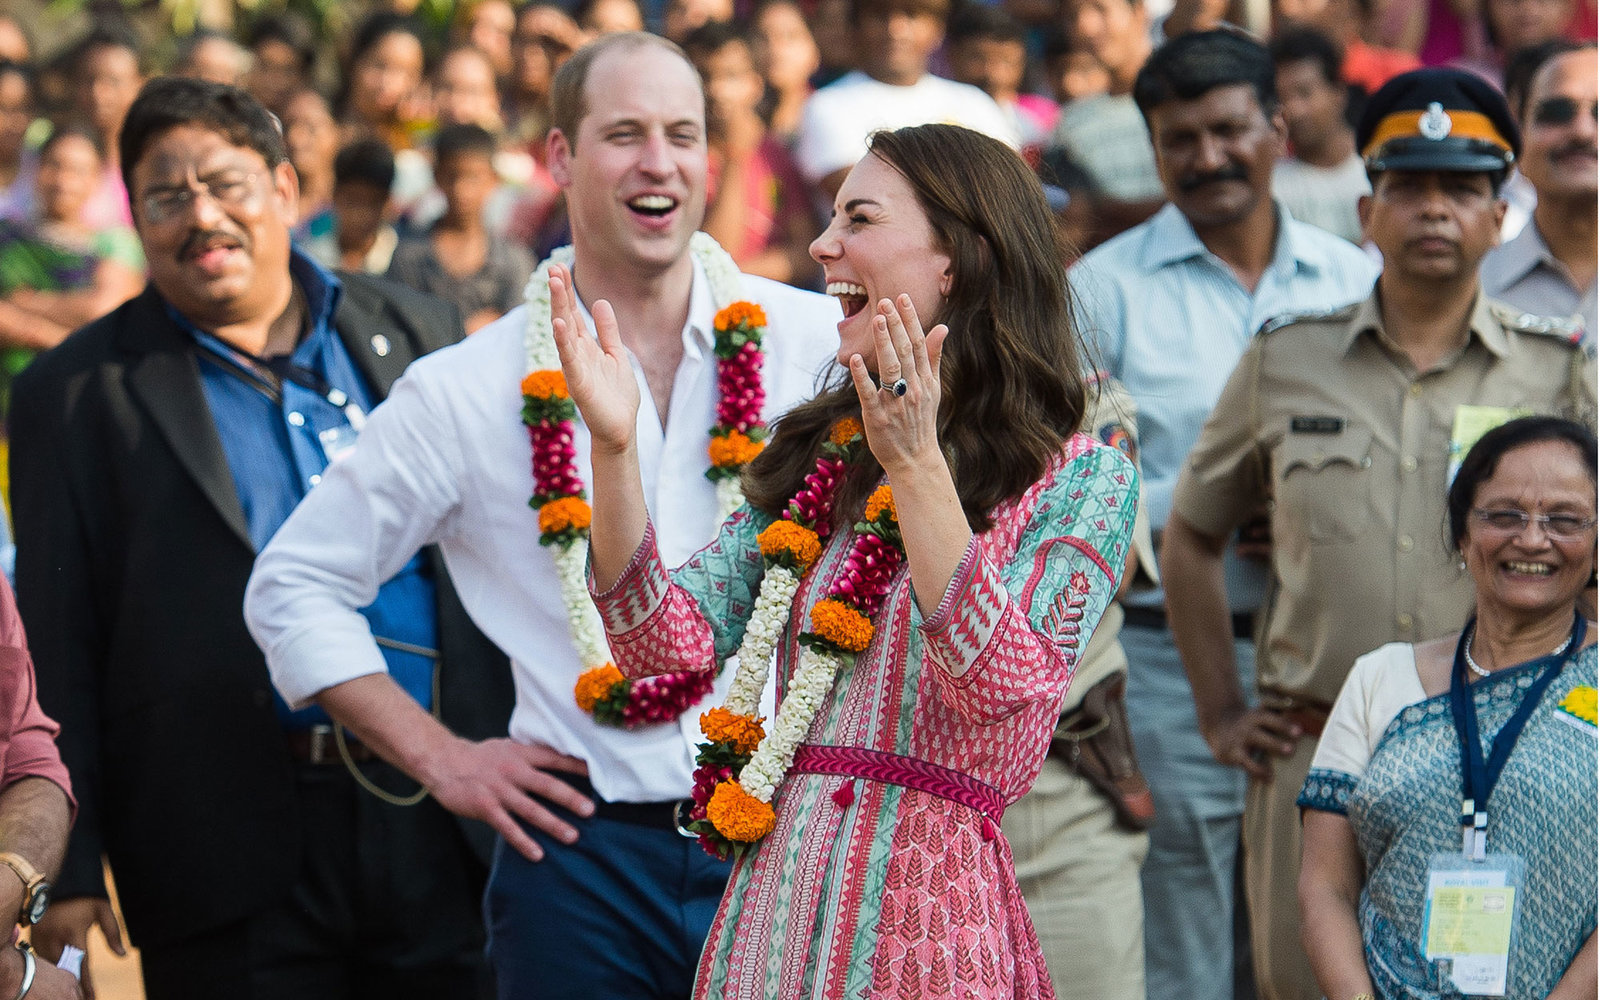 MUMBAI, INDIA - APRIL 10:  Catherine, Duchess of Cambridge and Prince William, Duke of Cambridge take part in football games during a visit to Banganga Water tank, where they met representatives of SMILE during the royal visit to India and Bhutan on April